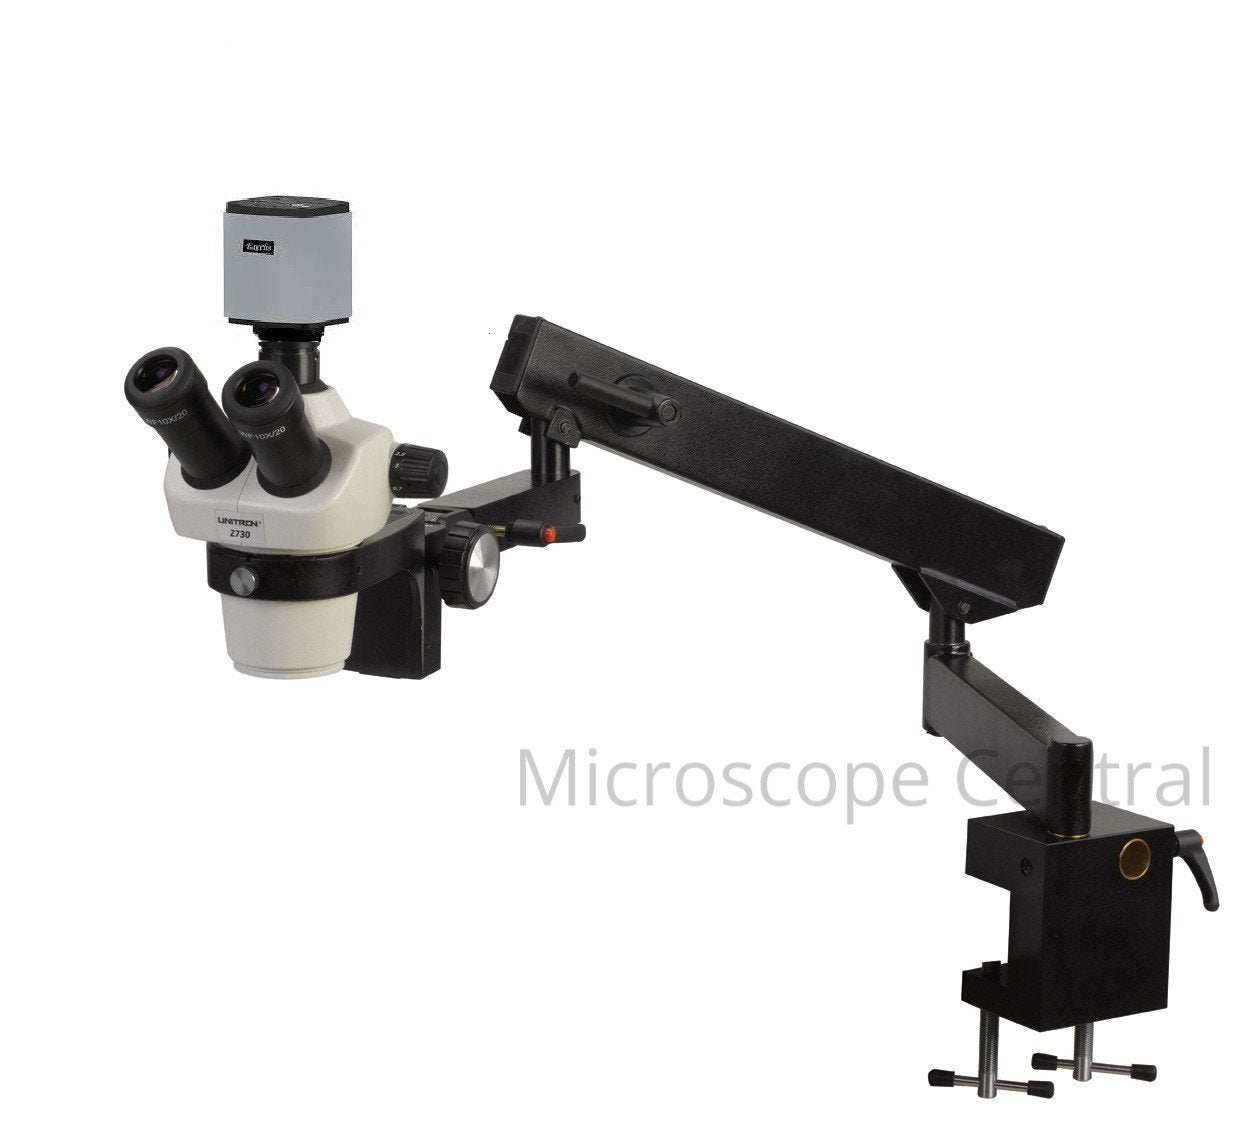 Unitron Z730 Flex Arm Digital Stereo Microscope 0.7x - 3.0x